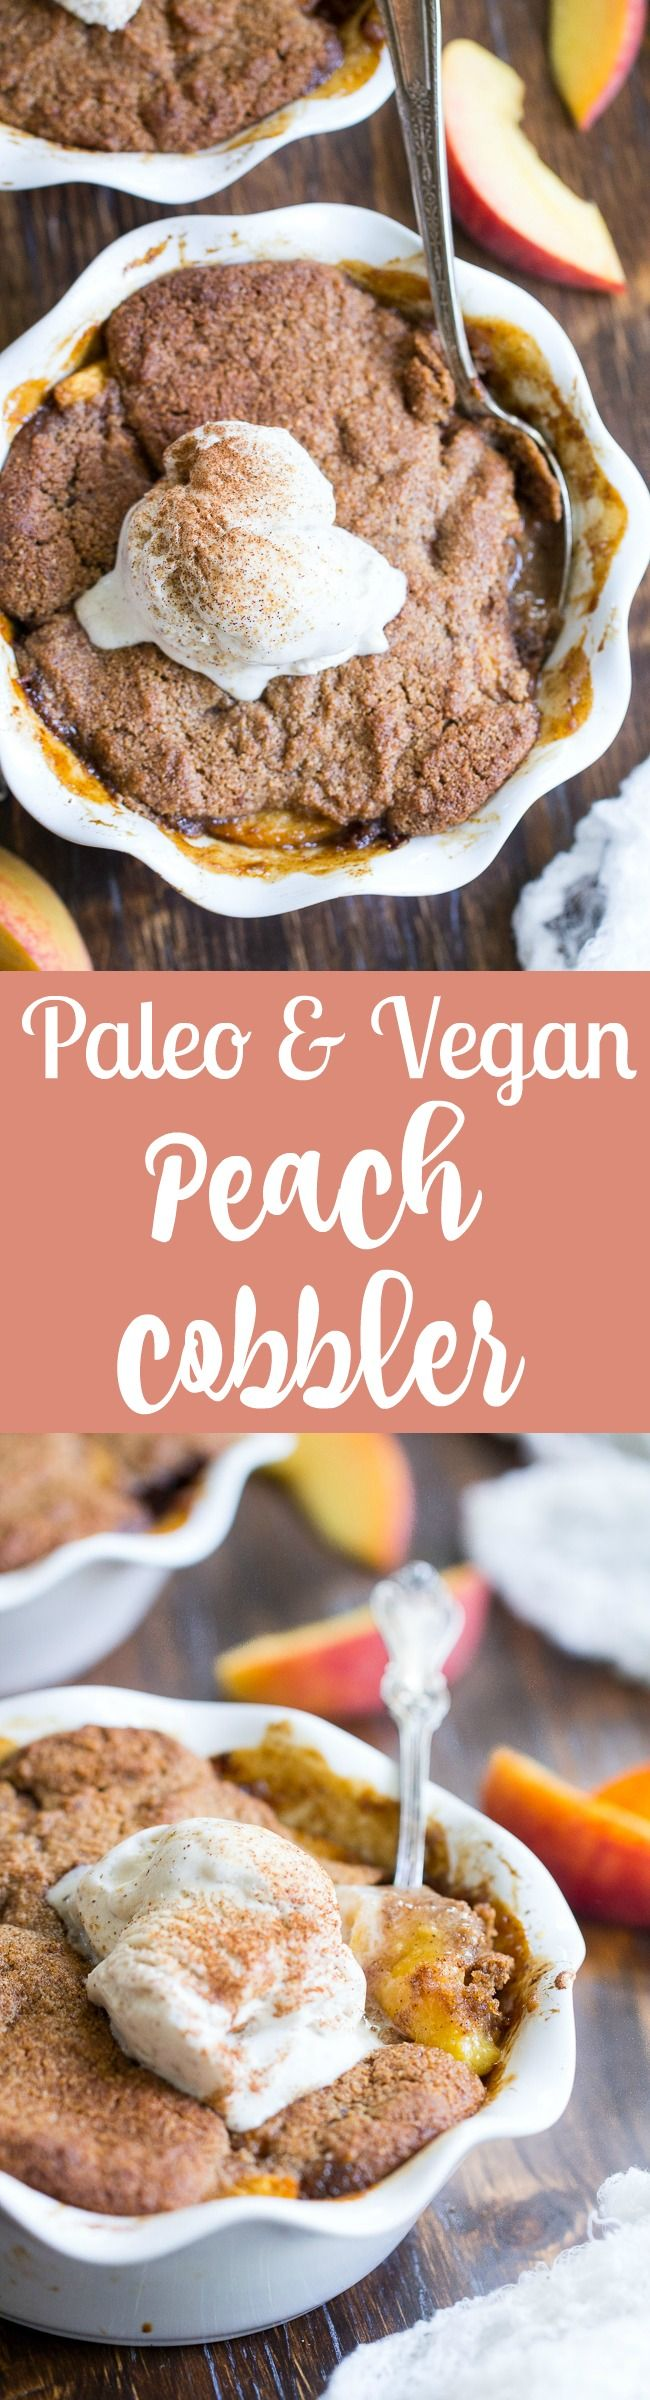 Take advantage of peach season with this paleo and vegan peach cobbler!  It's sweetened with unrefined coconut sugar and spiced with a touch of sweet cinnamon, with a warm and crisp grain-free pastry topping that's downright addicting.  A great gluten free, dairy free dessert for summer!